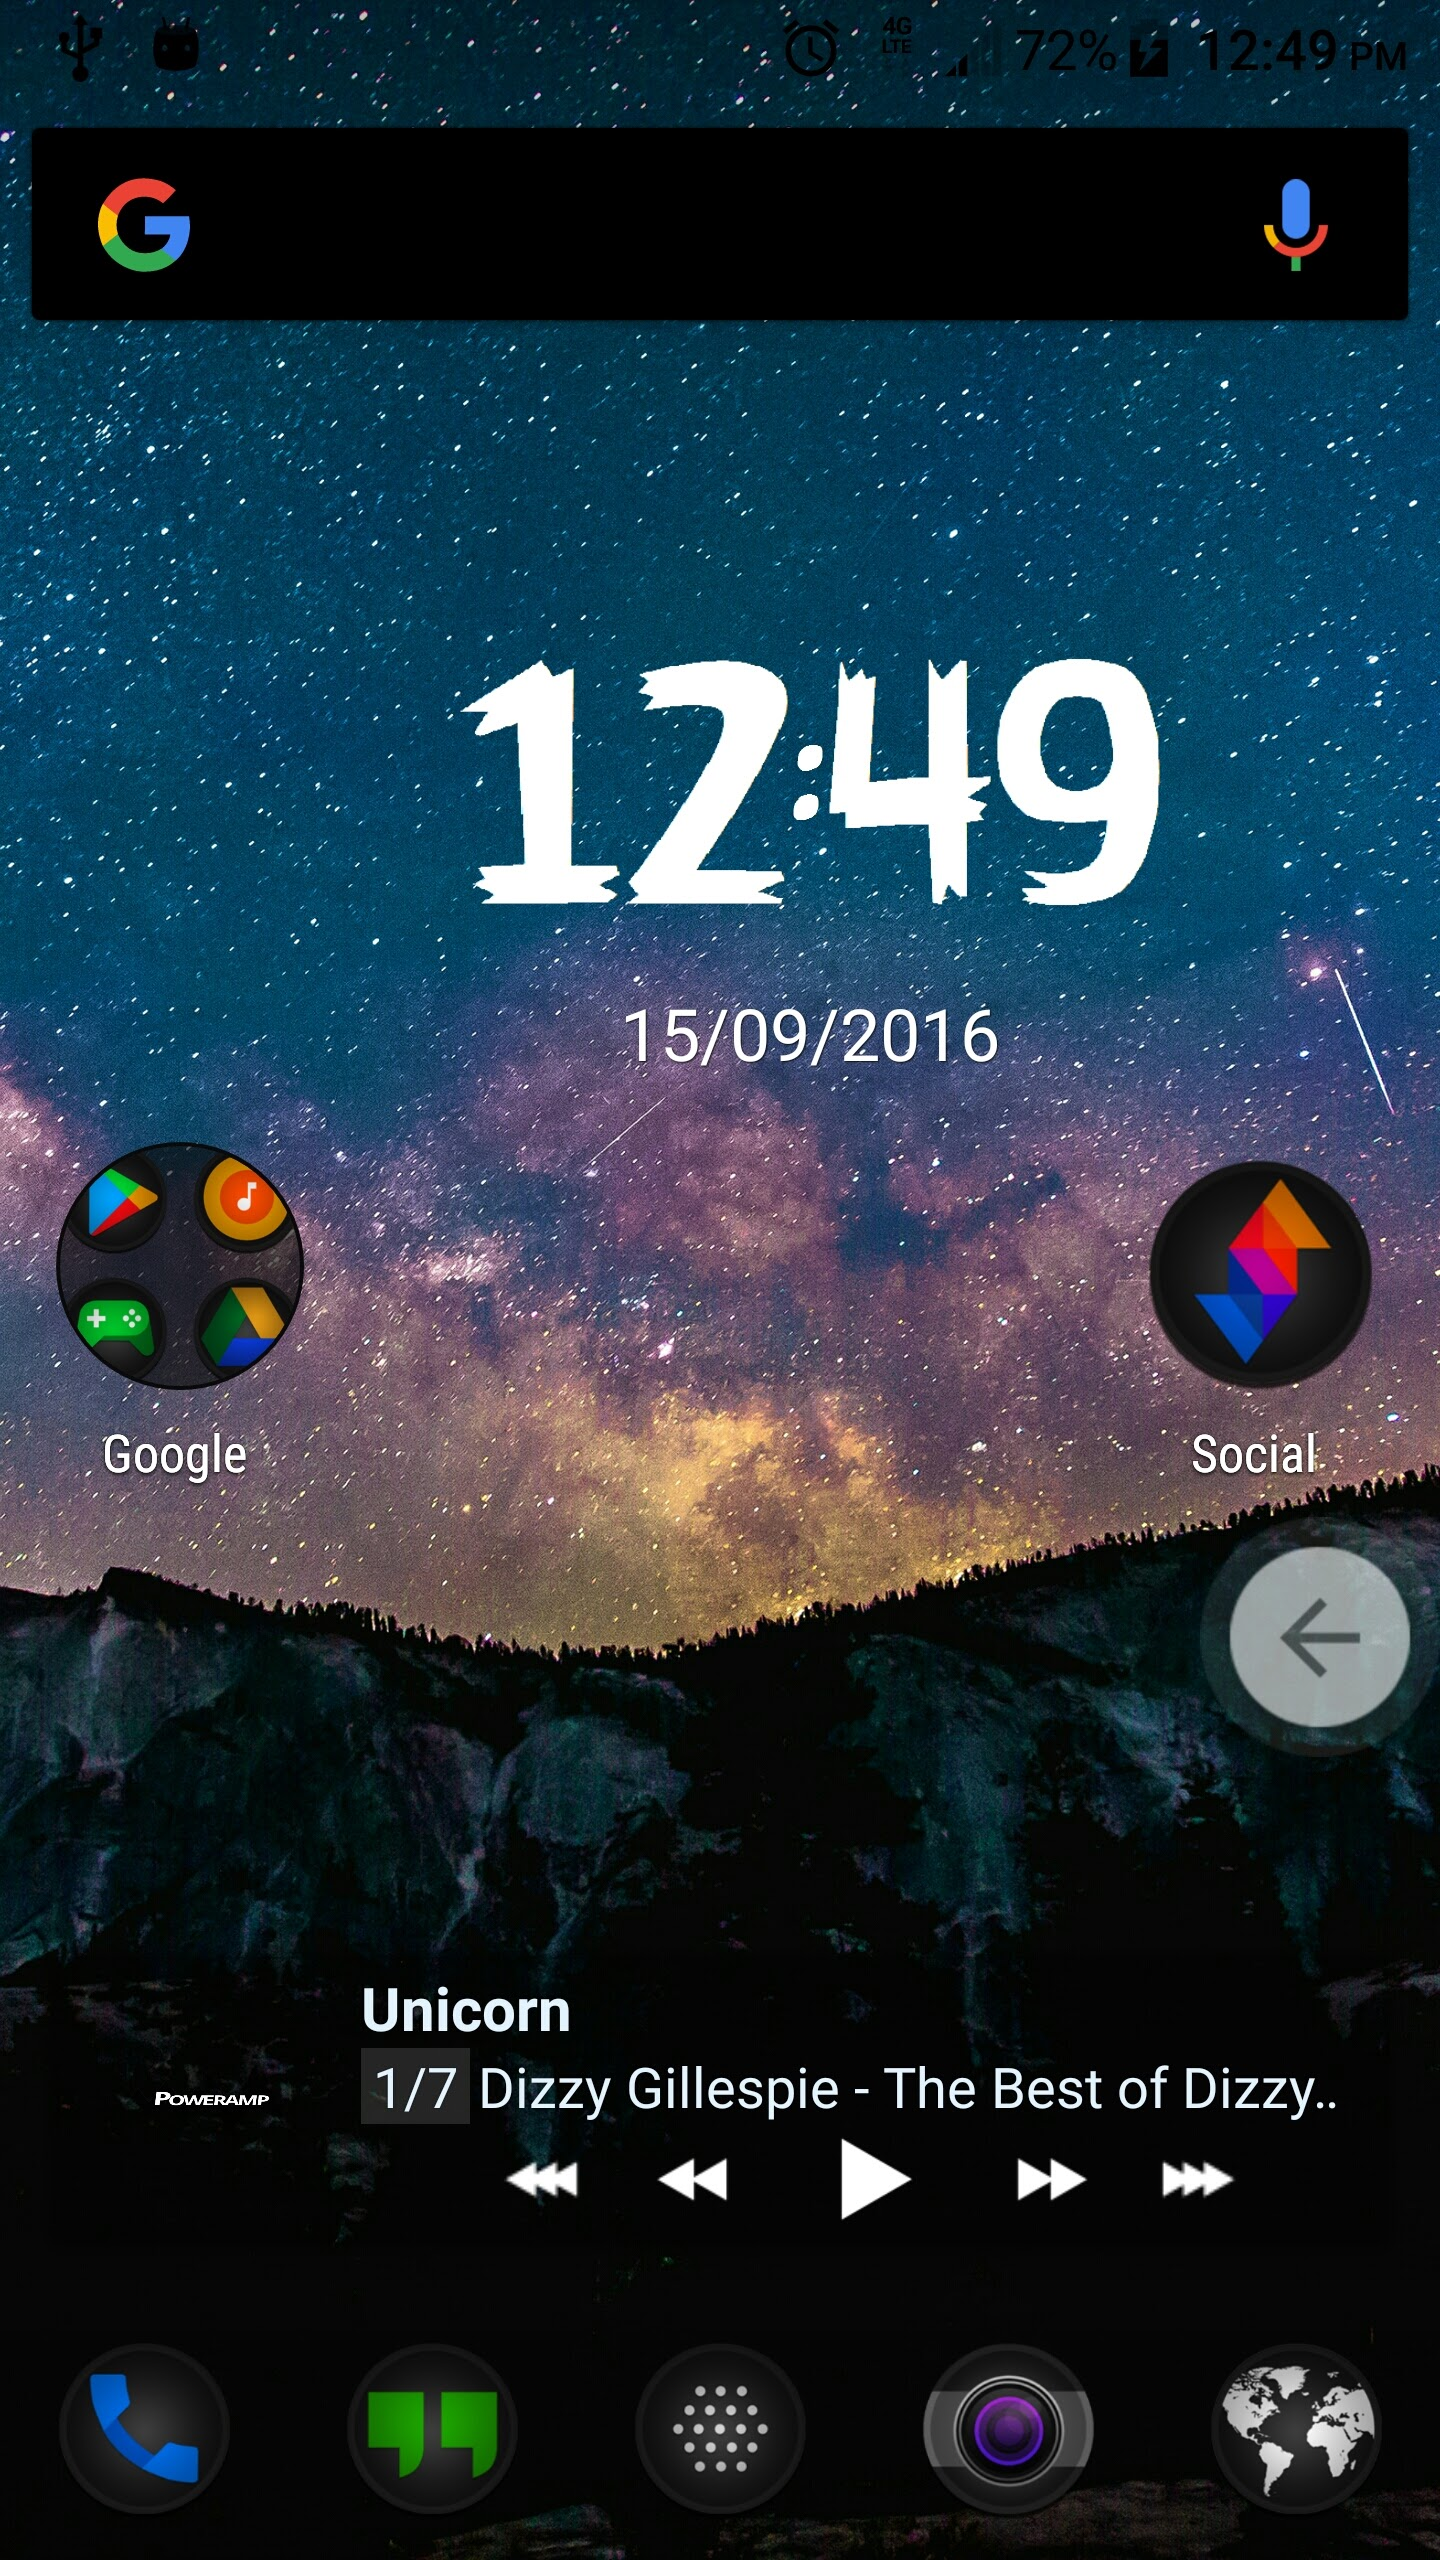 Screenshot_2016-09-15-12-49-07.jpg